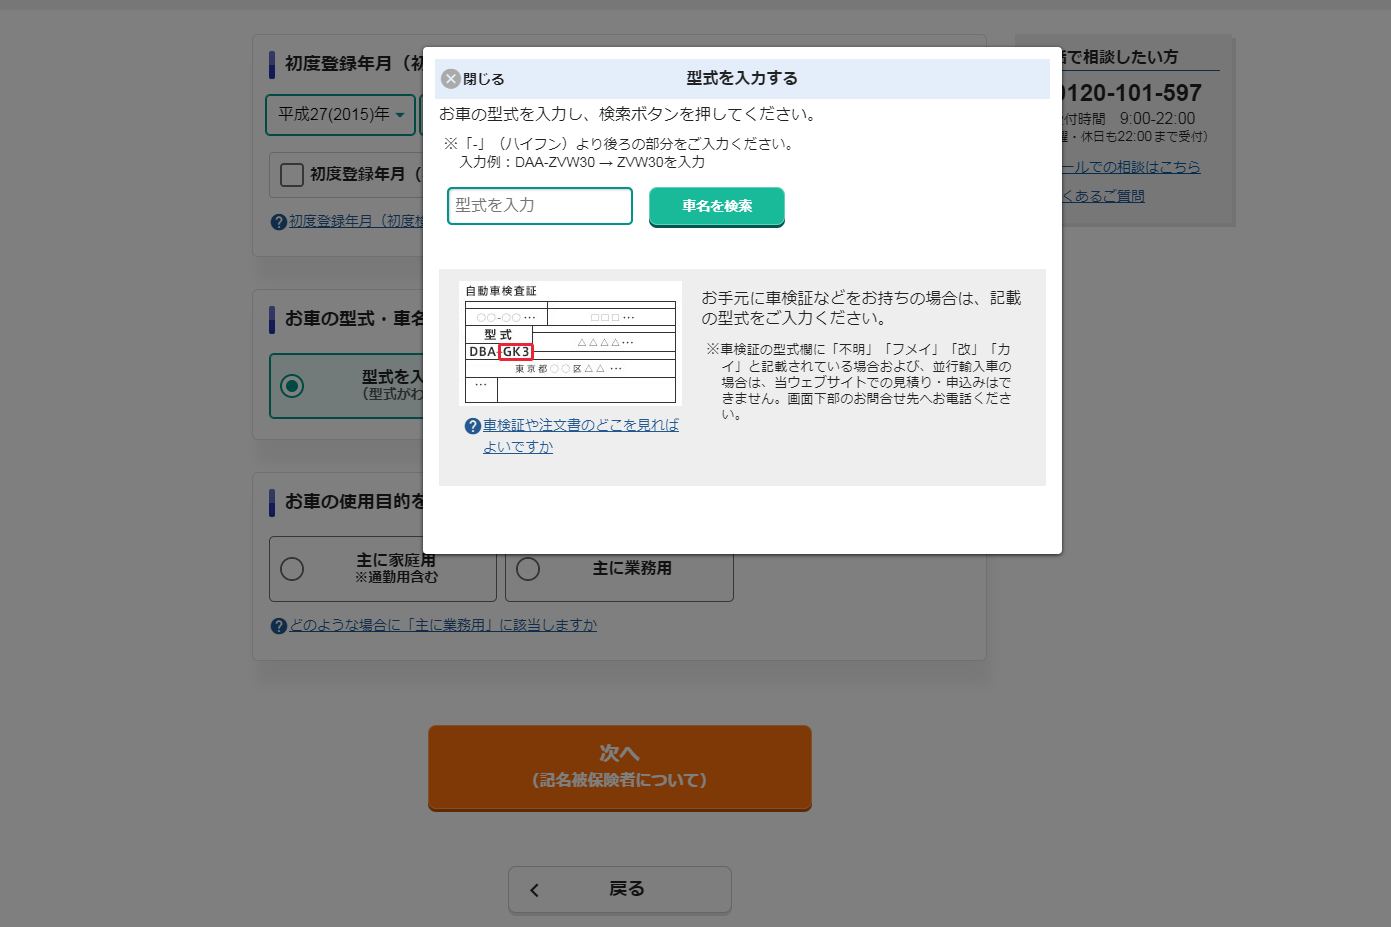 https://from.sonysonpo.co.jp/improvement/190603-02.png